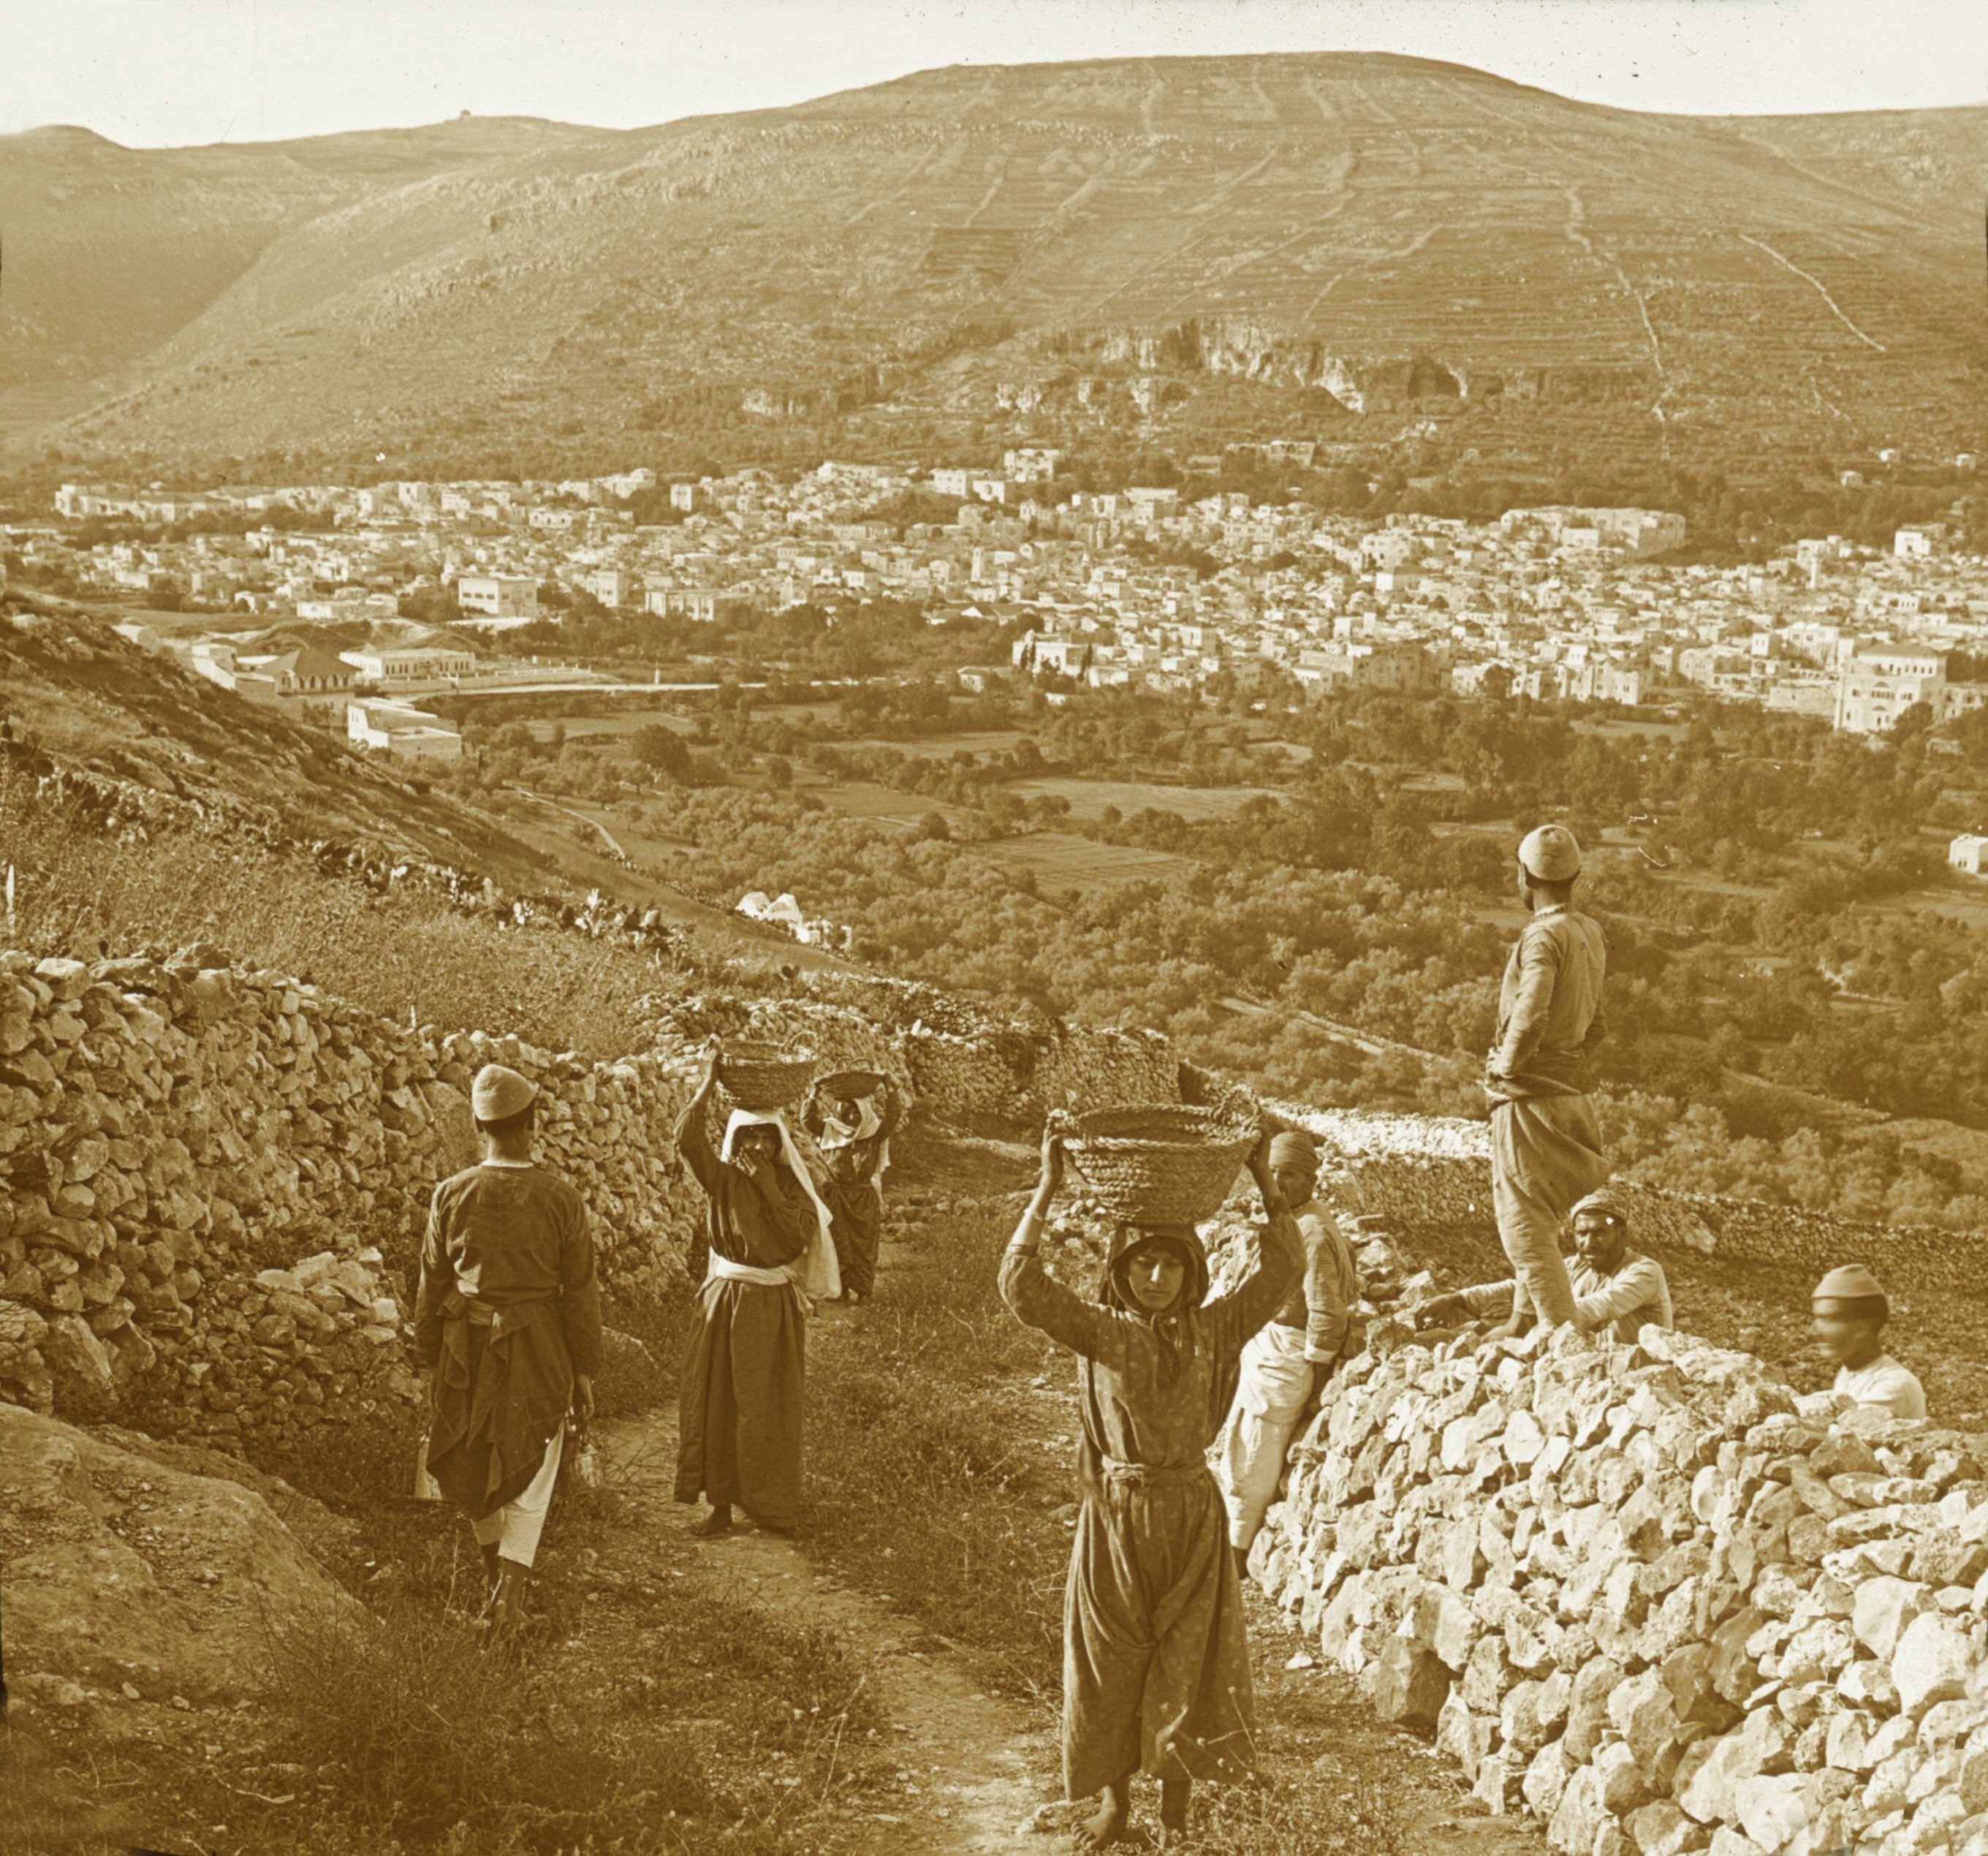 Nablus - نابلس : NABLUS - Late 19th, early 20th c. 41 - Nablus and Mount Gerizim, 1880s